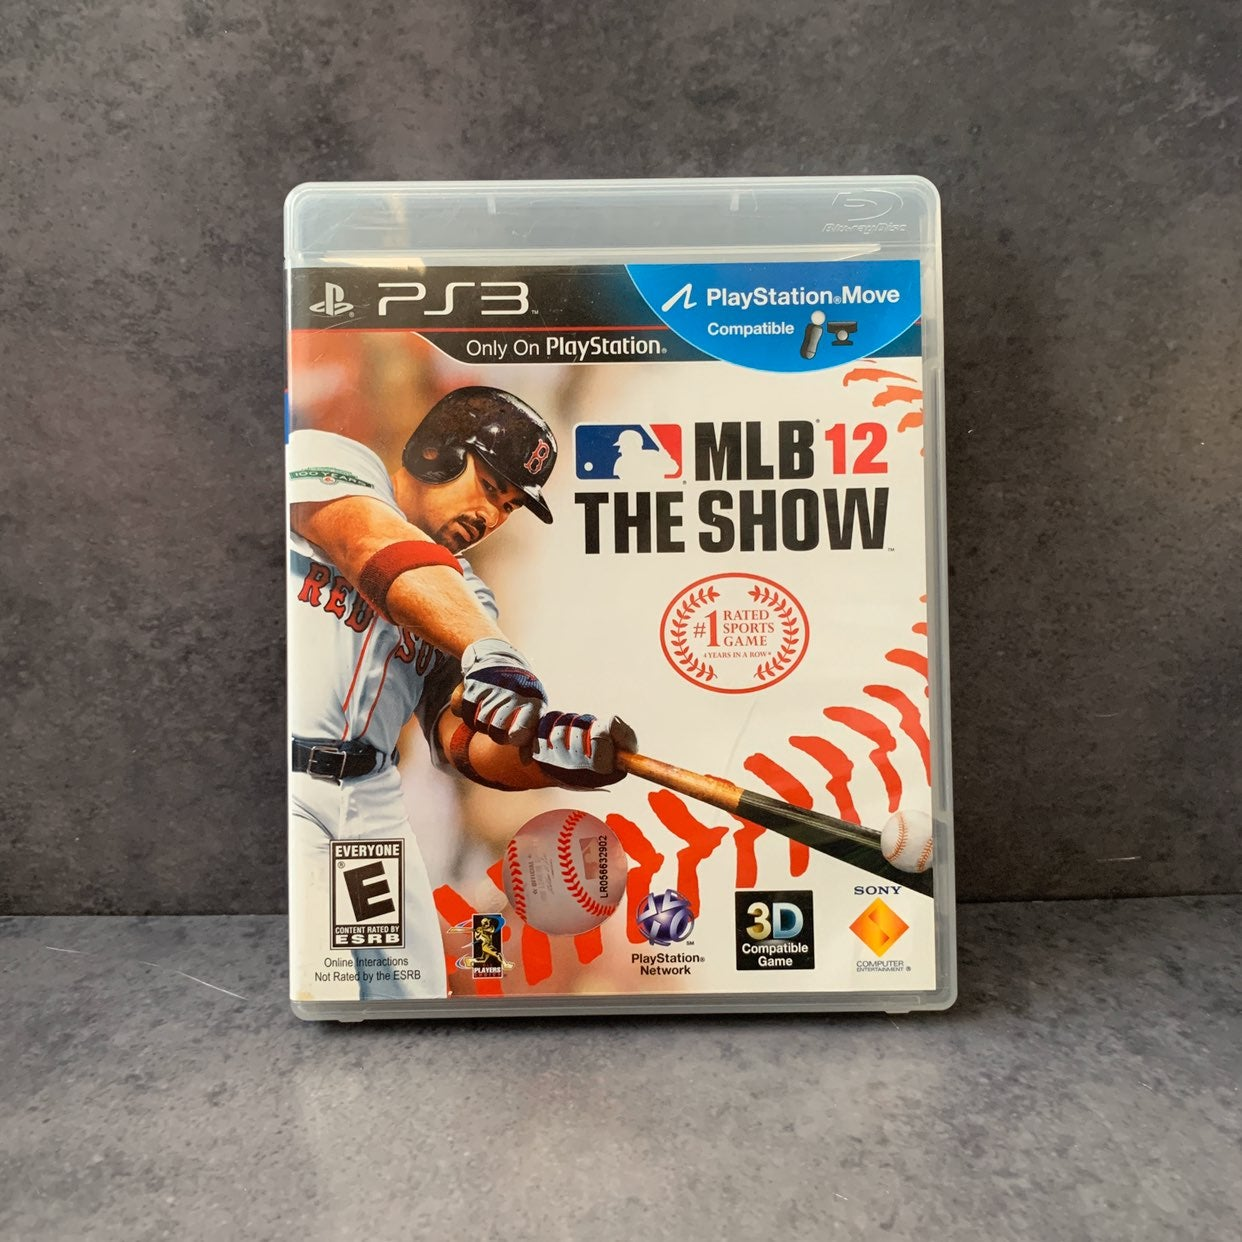 PS3 MLB 12 THE SHOW Game PlayStation 3